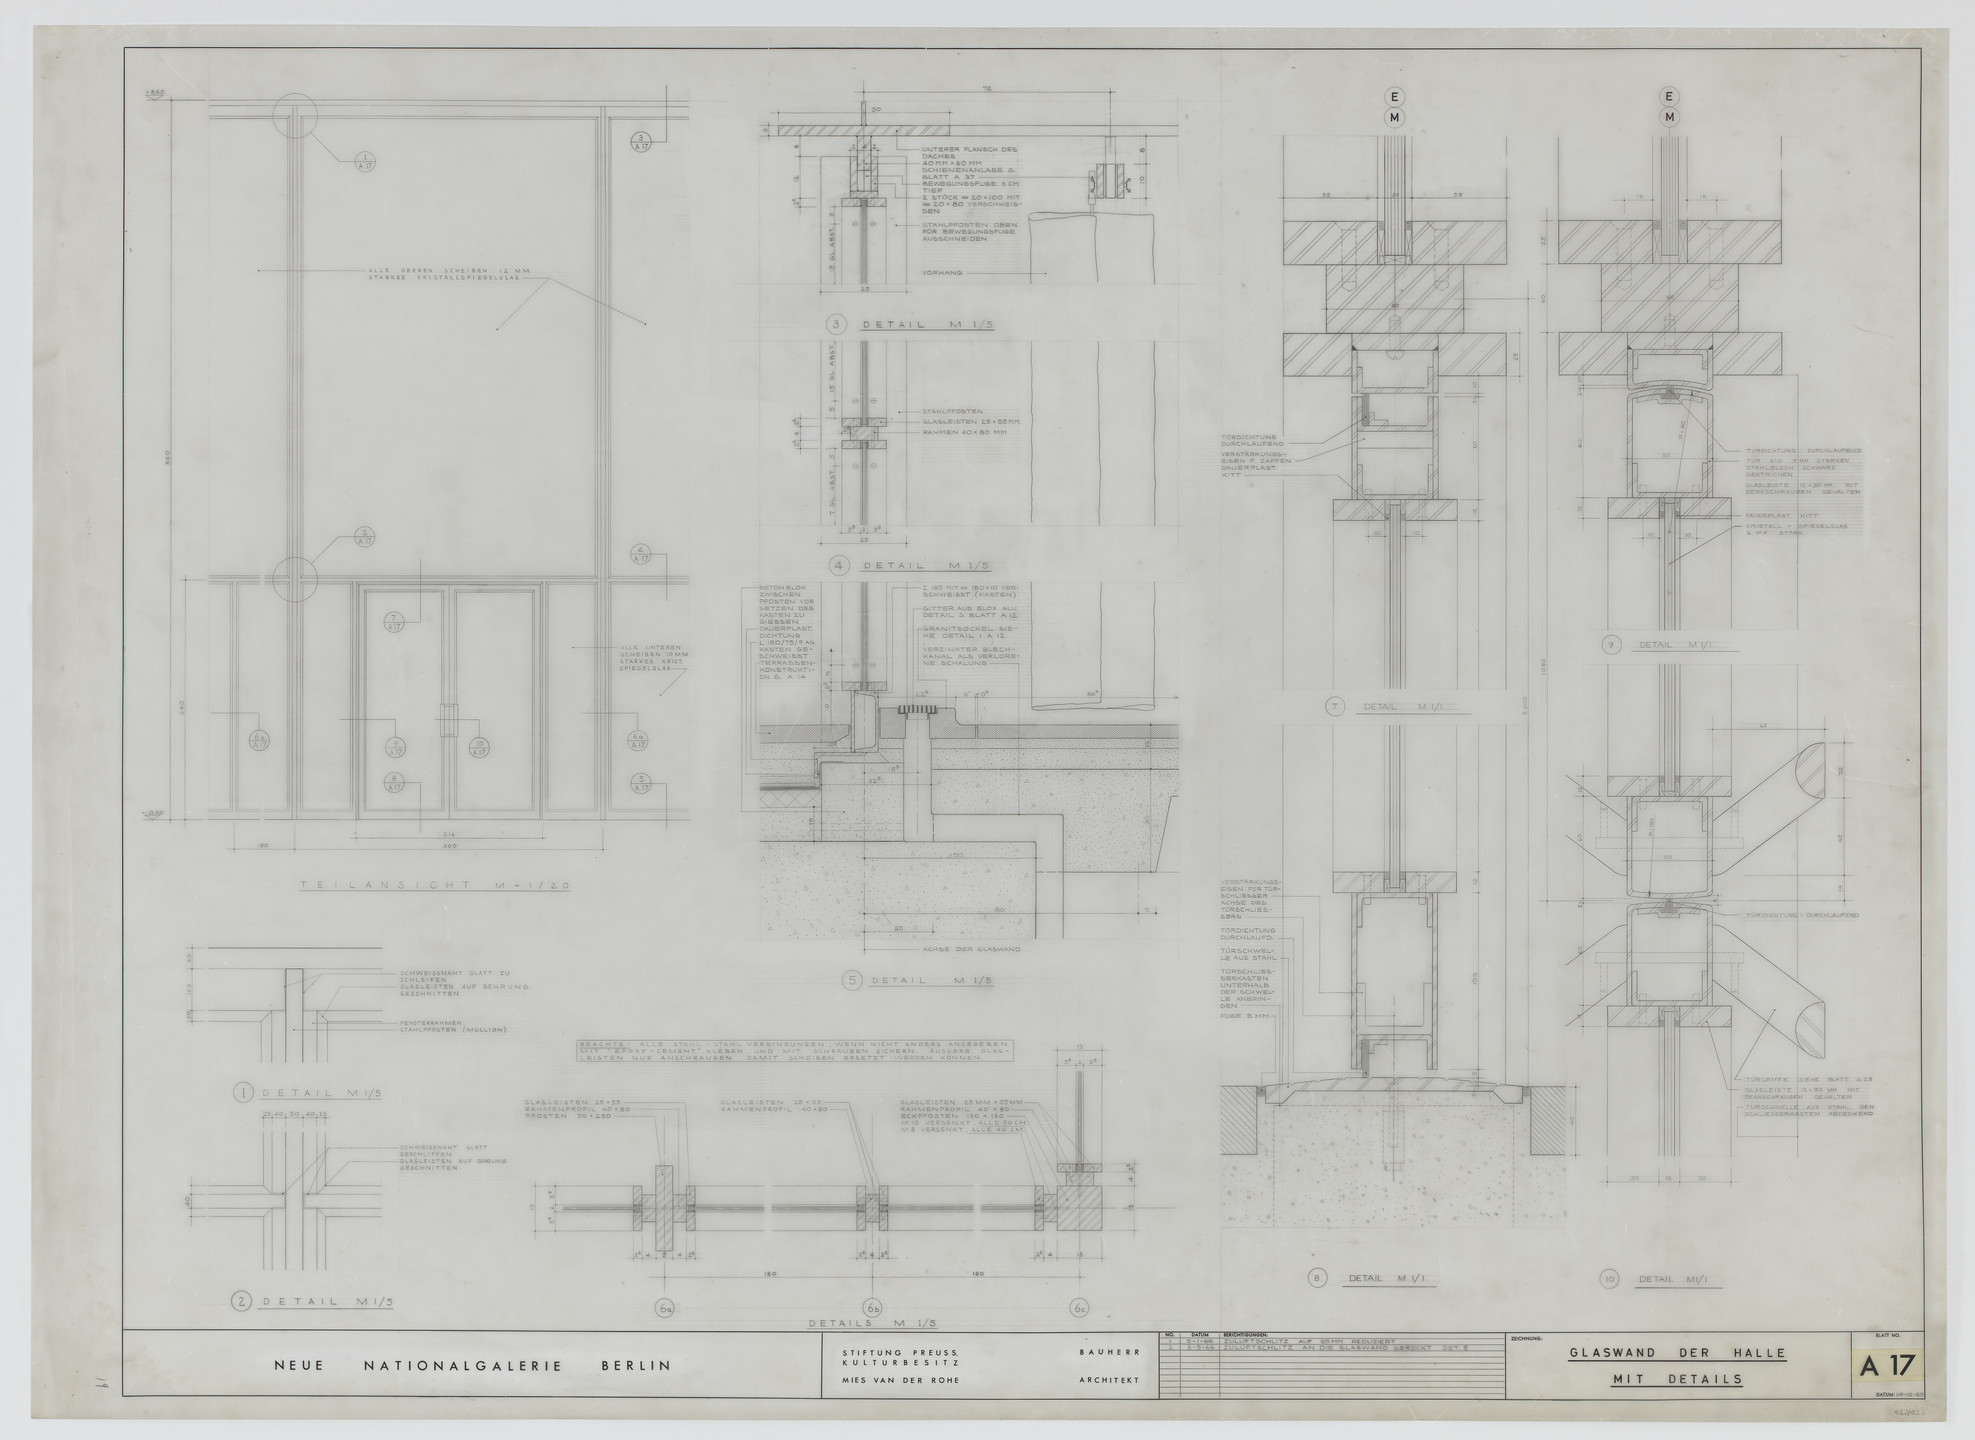 Ludwig Mies van der Rohe. New National Gallery, Berlin, Germany (Elevations and sections, glass wall in hall with details). 1966